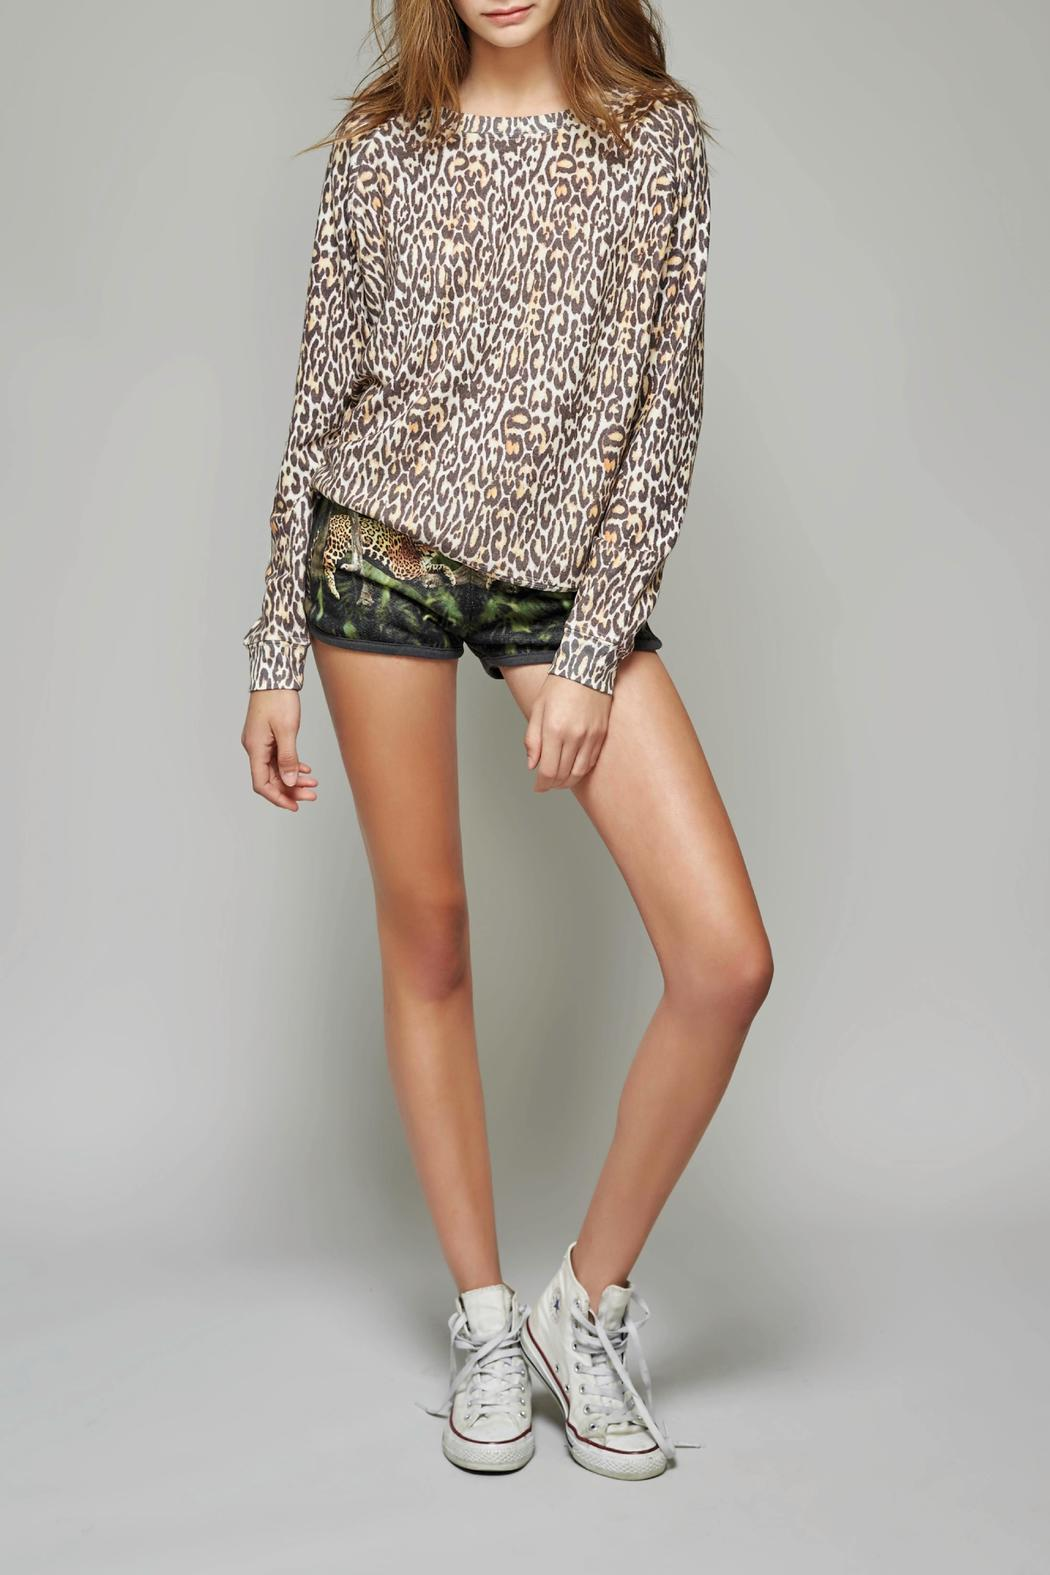 All Things Fabulous Cheetah Print Cozy Sweater - Front Cropped Image